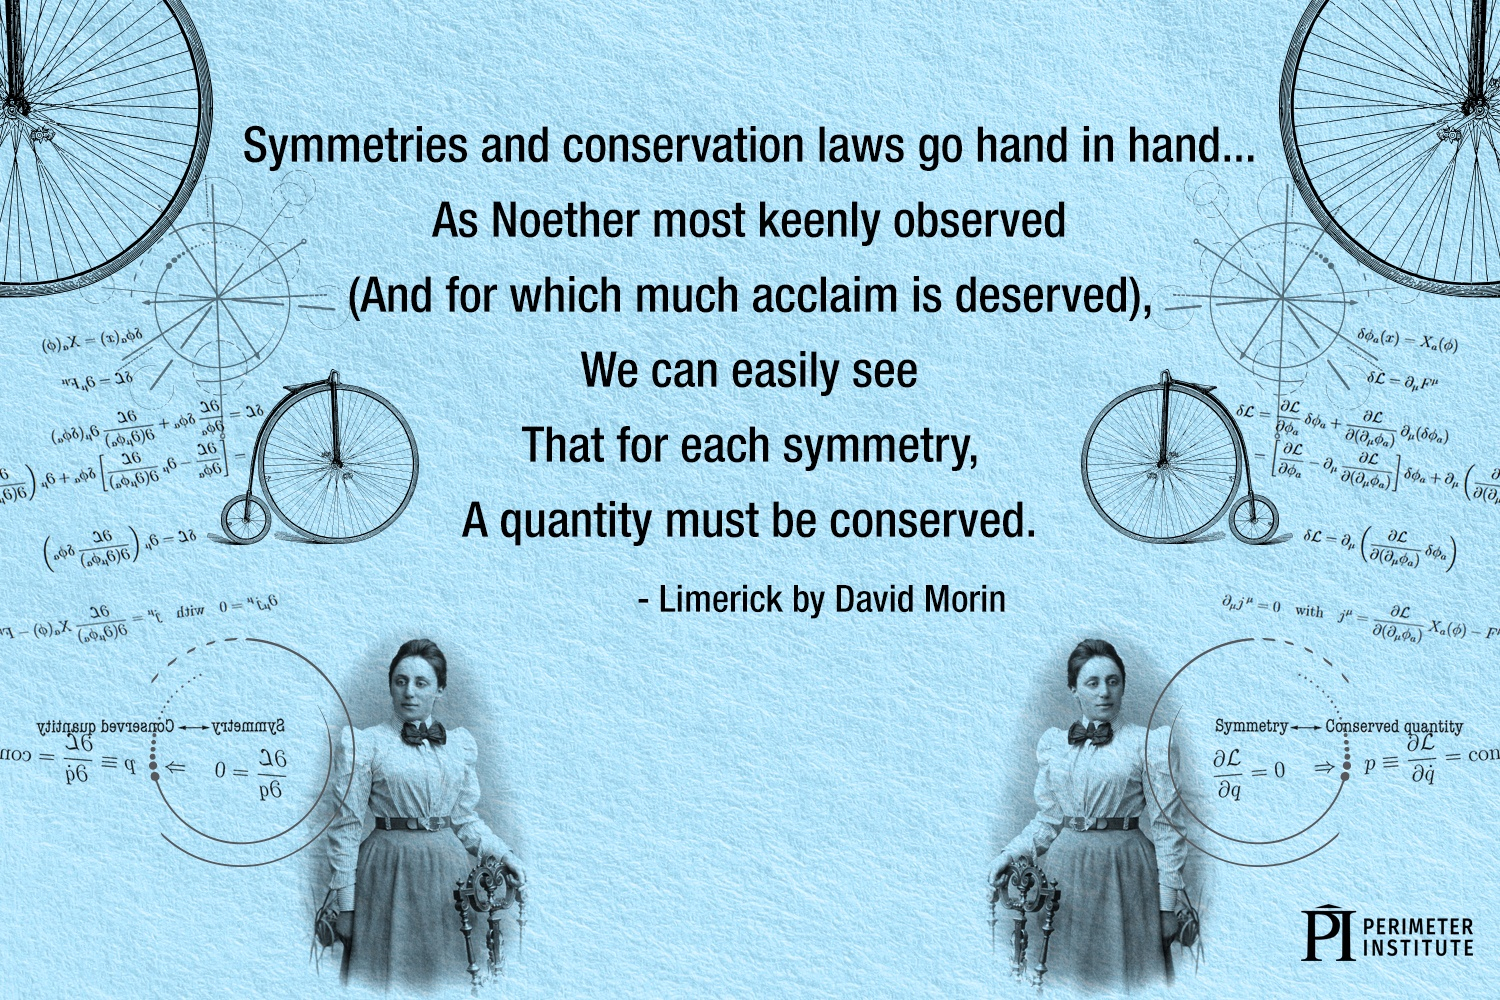 noether symmetries